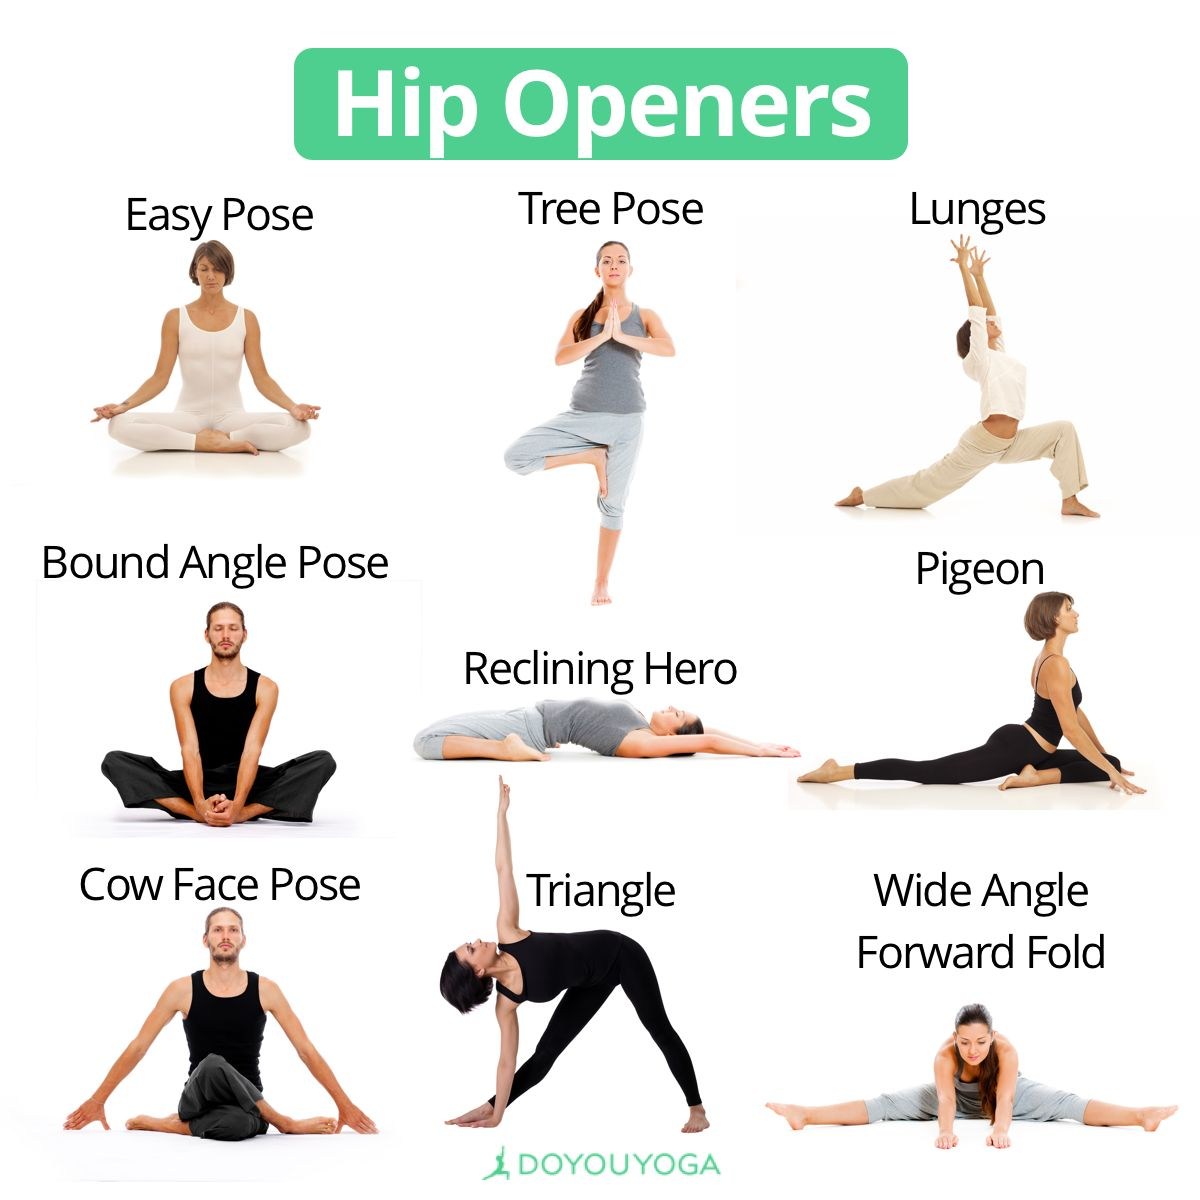 49+ How to loosen tight hips ideas in 2021